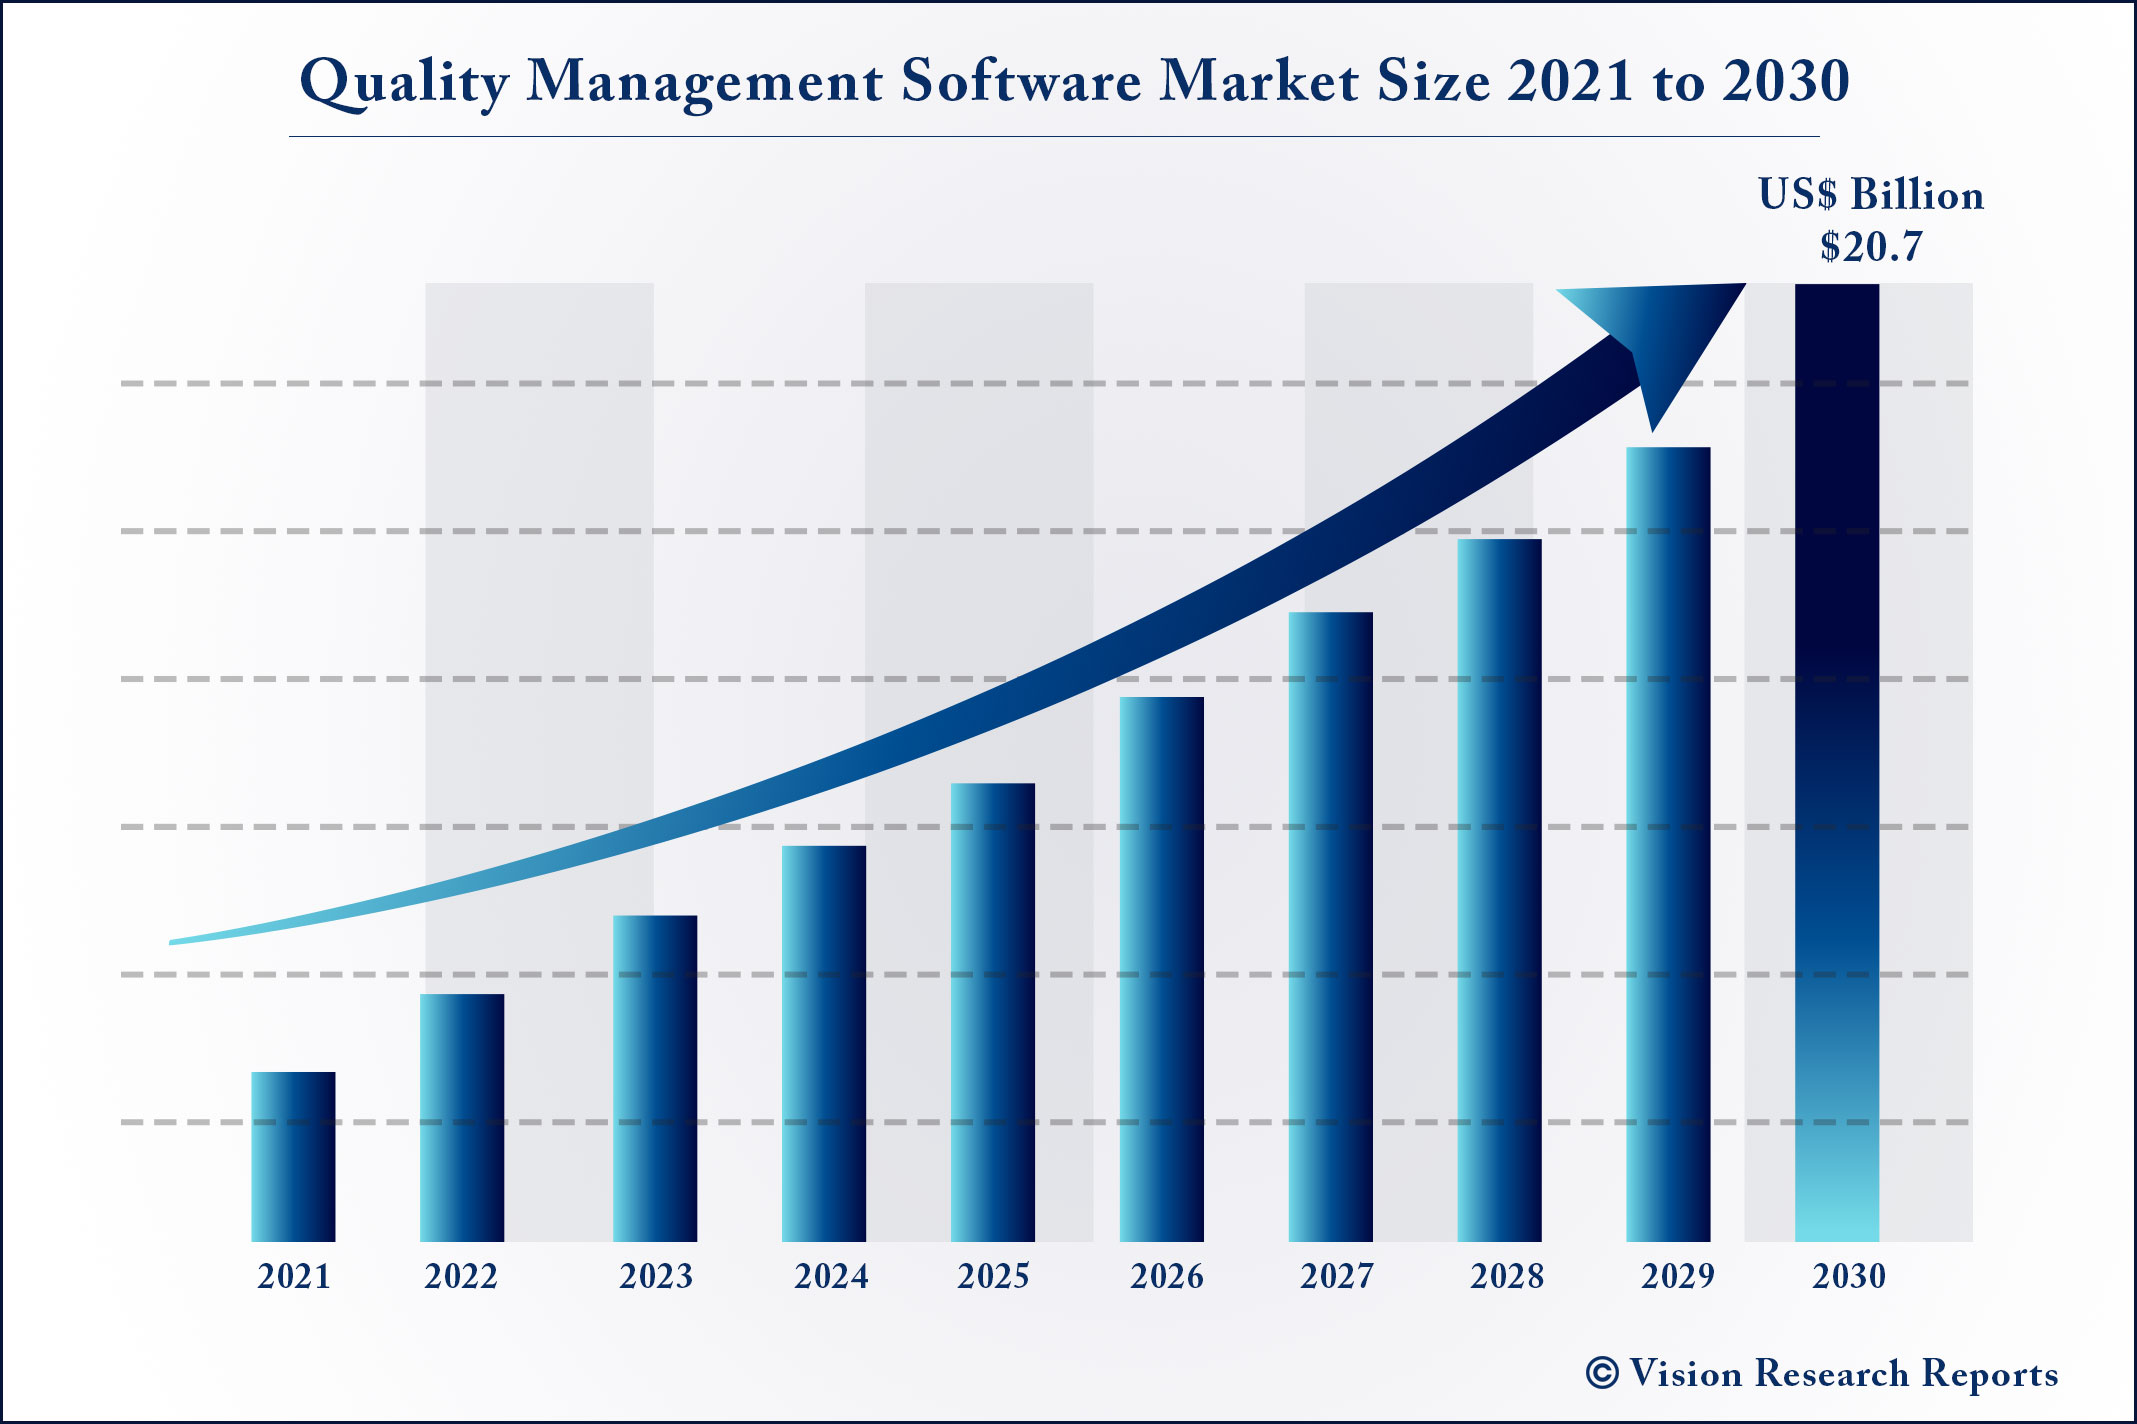 Quality Management Software Market Size 2021 to 2030